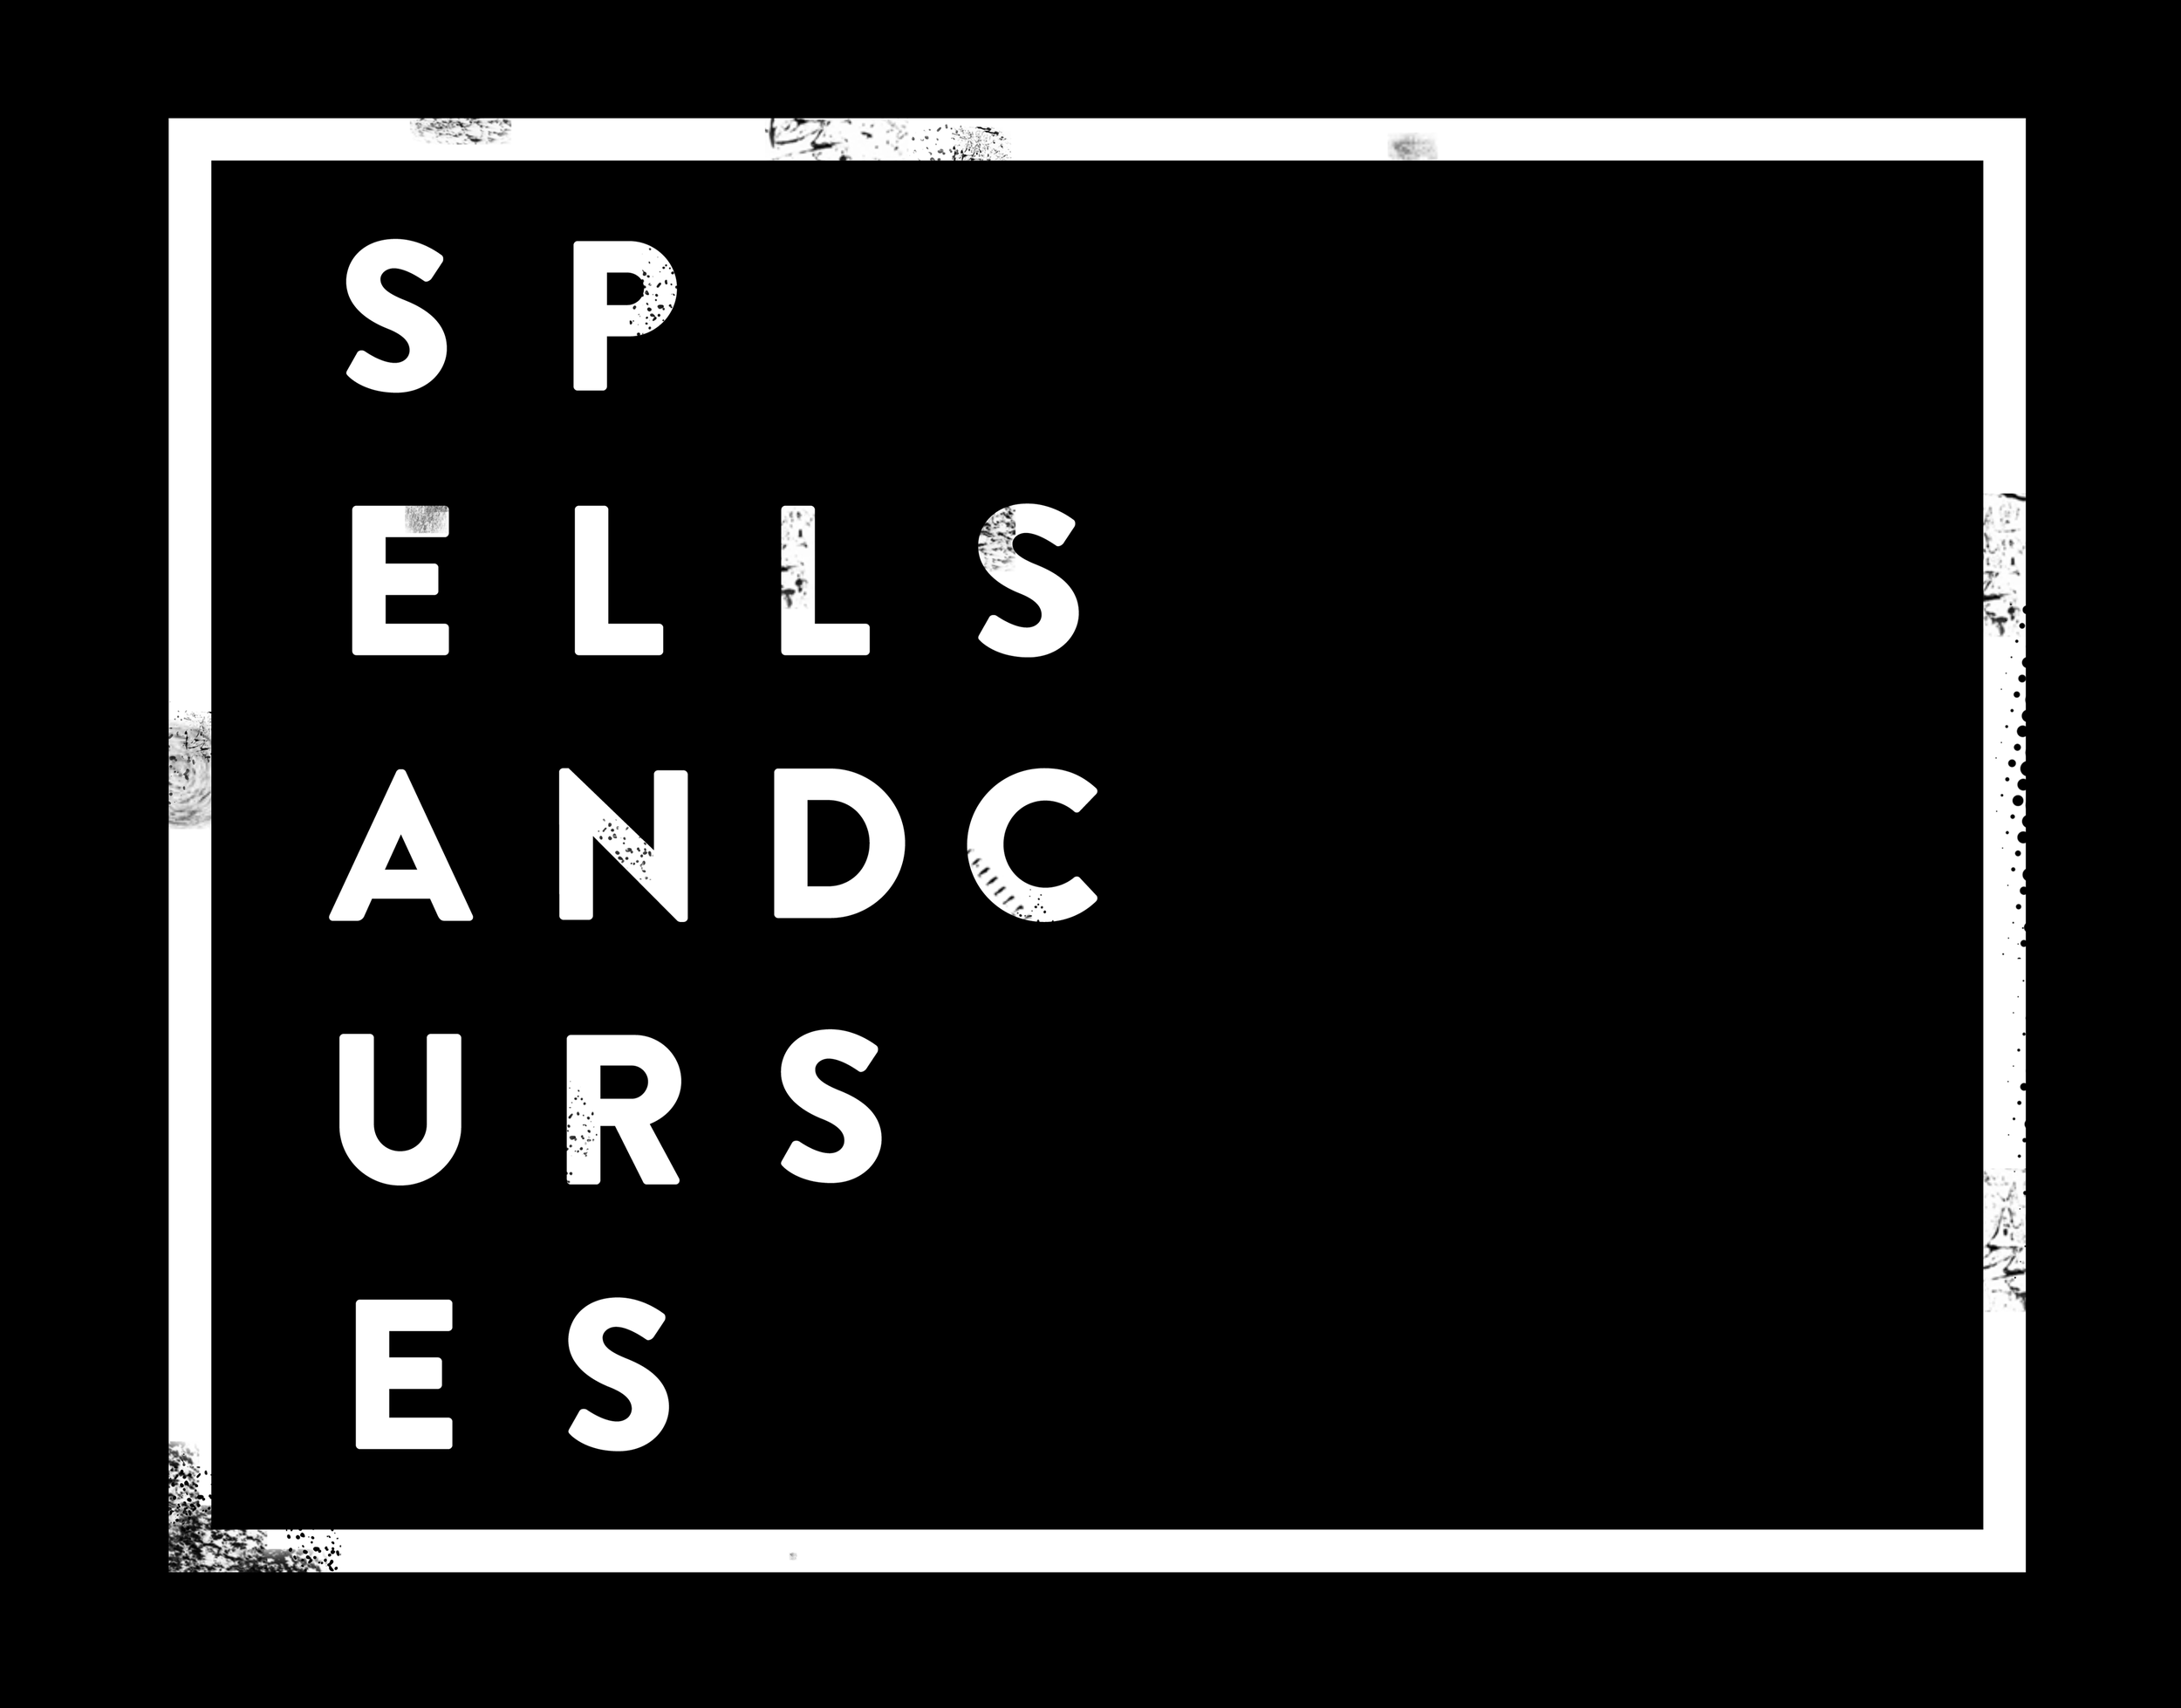 spells sticker white on black with border.png